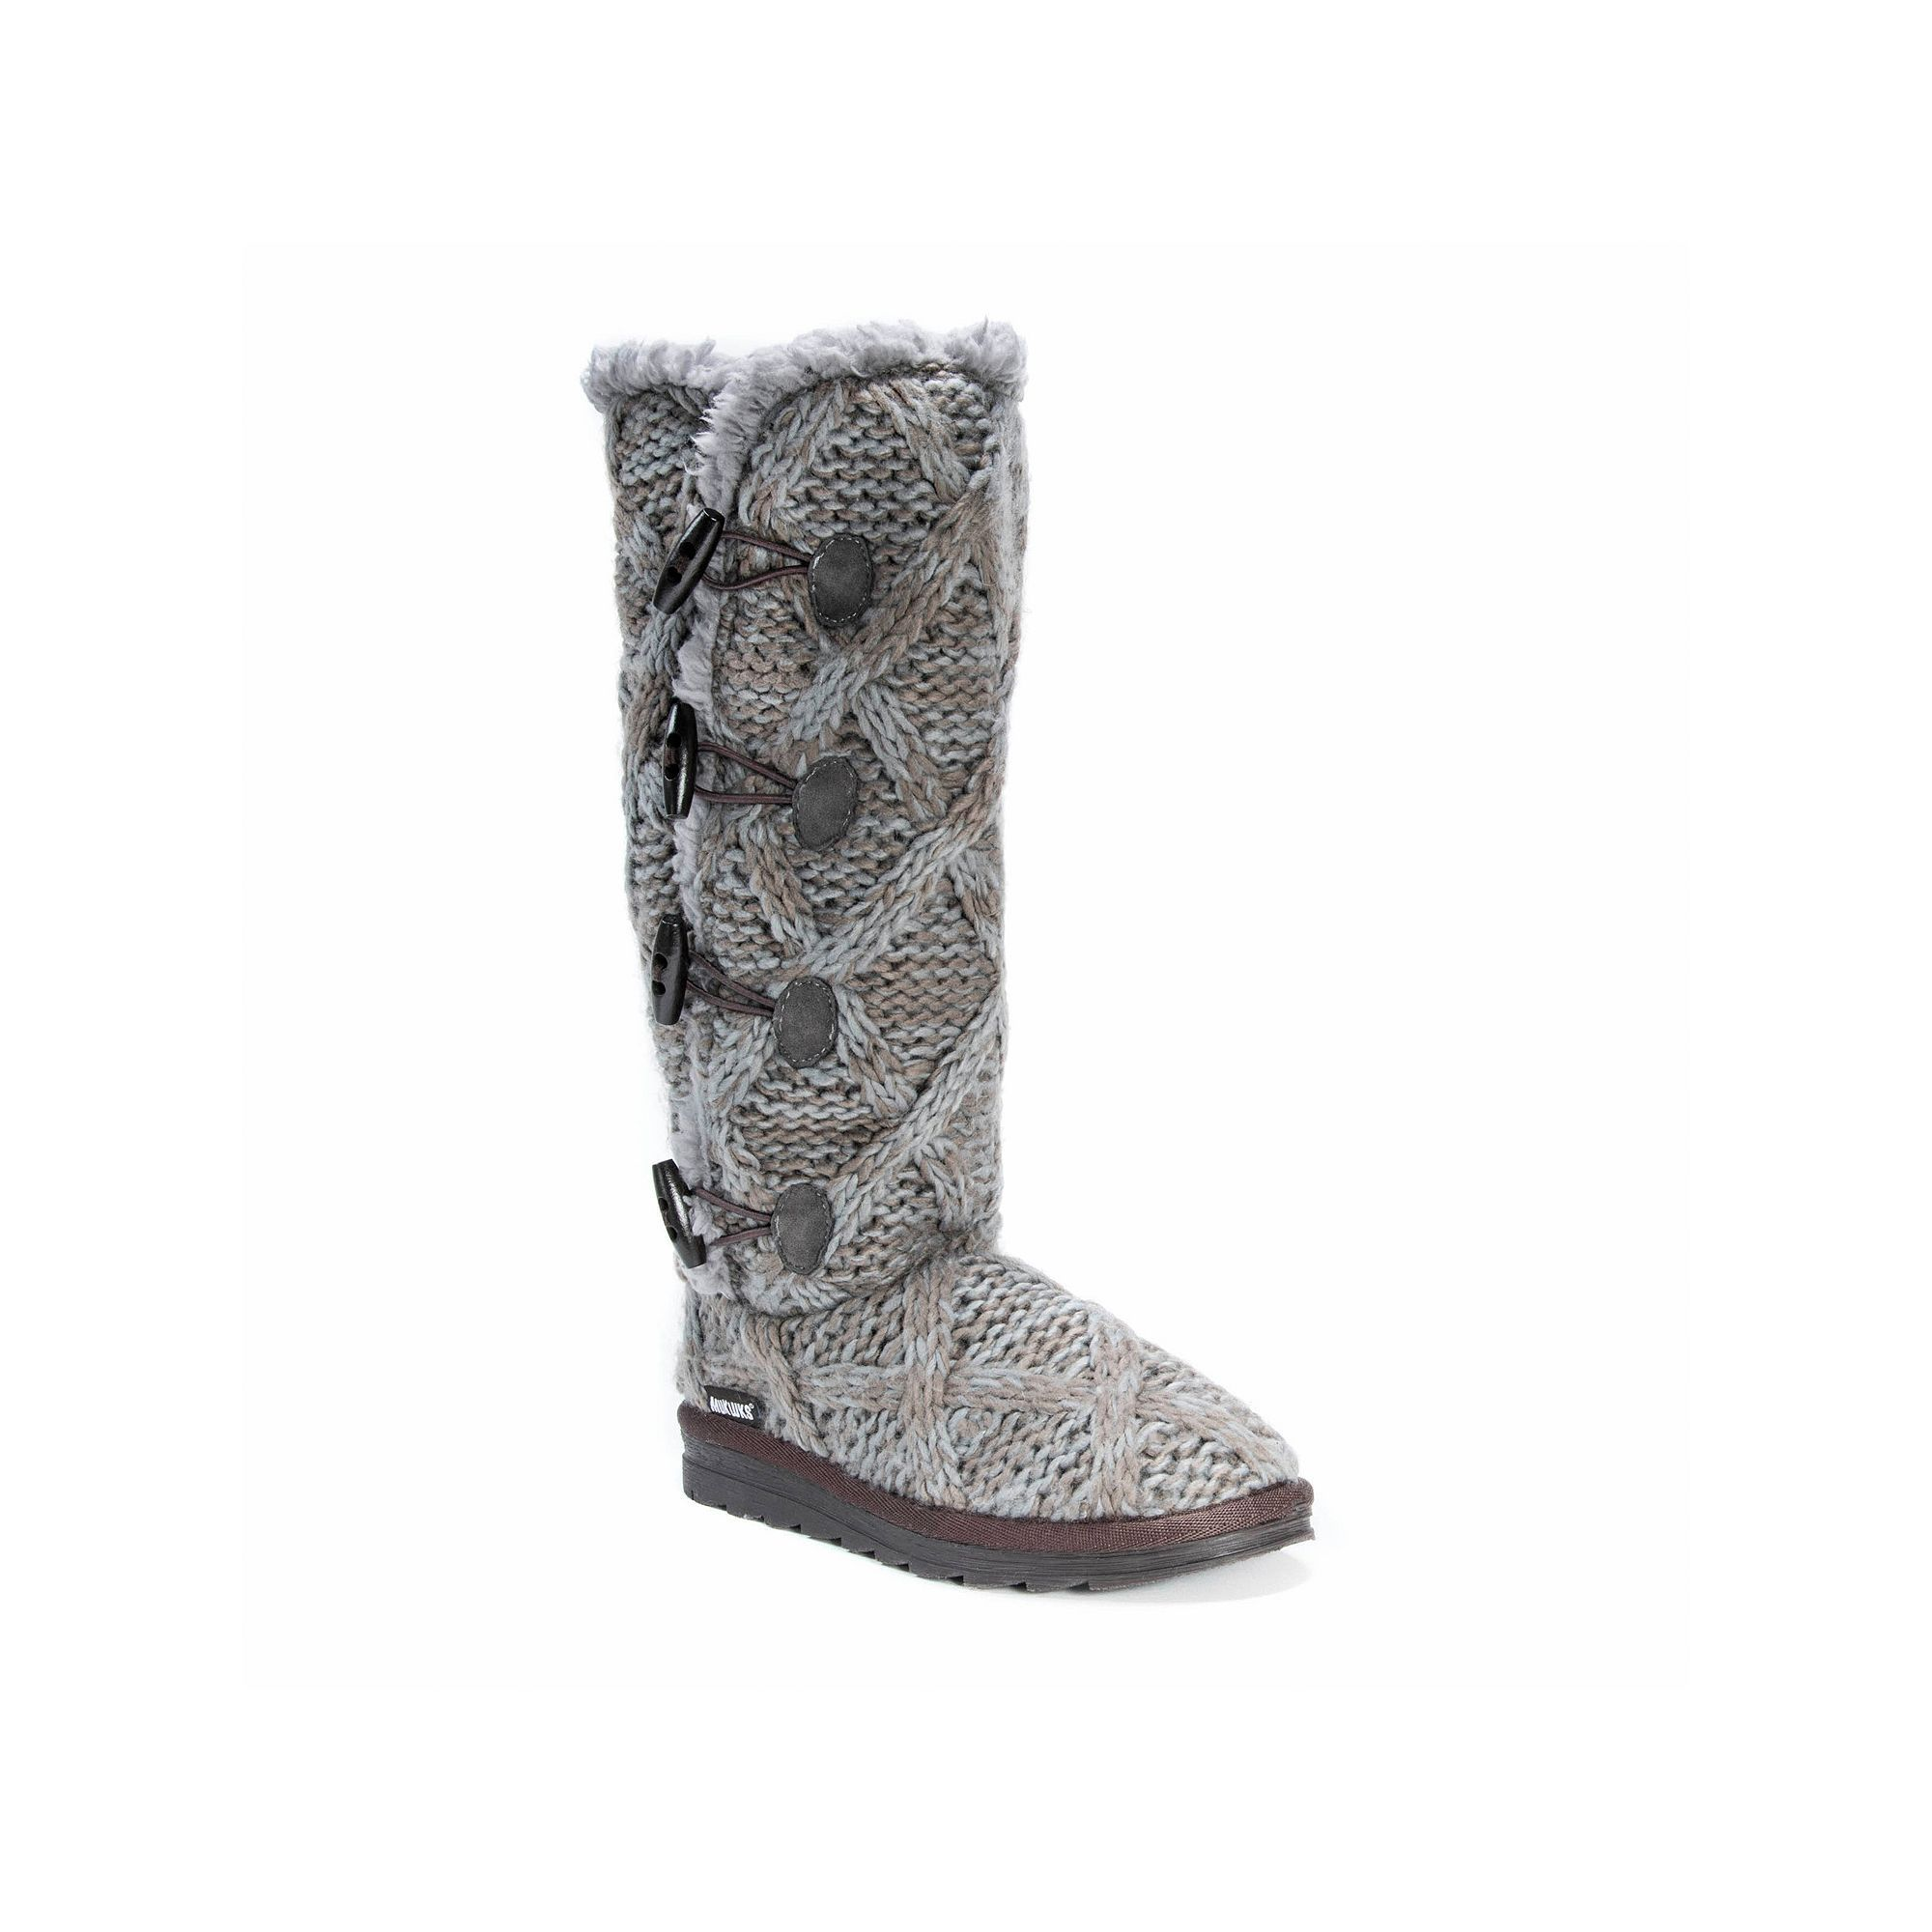 low shipping fee online MUK LUKS Felicity Women's ... Water-Resistant Sweater Boots outlet discount cheap sale 100% authentic free shipping enjoy with credit card sale online Wt4f4b6xN